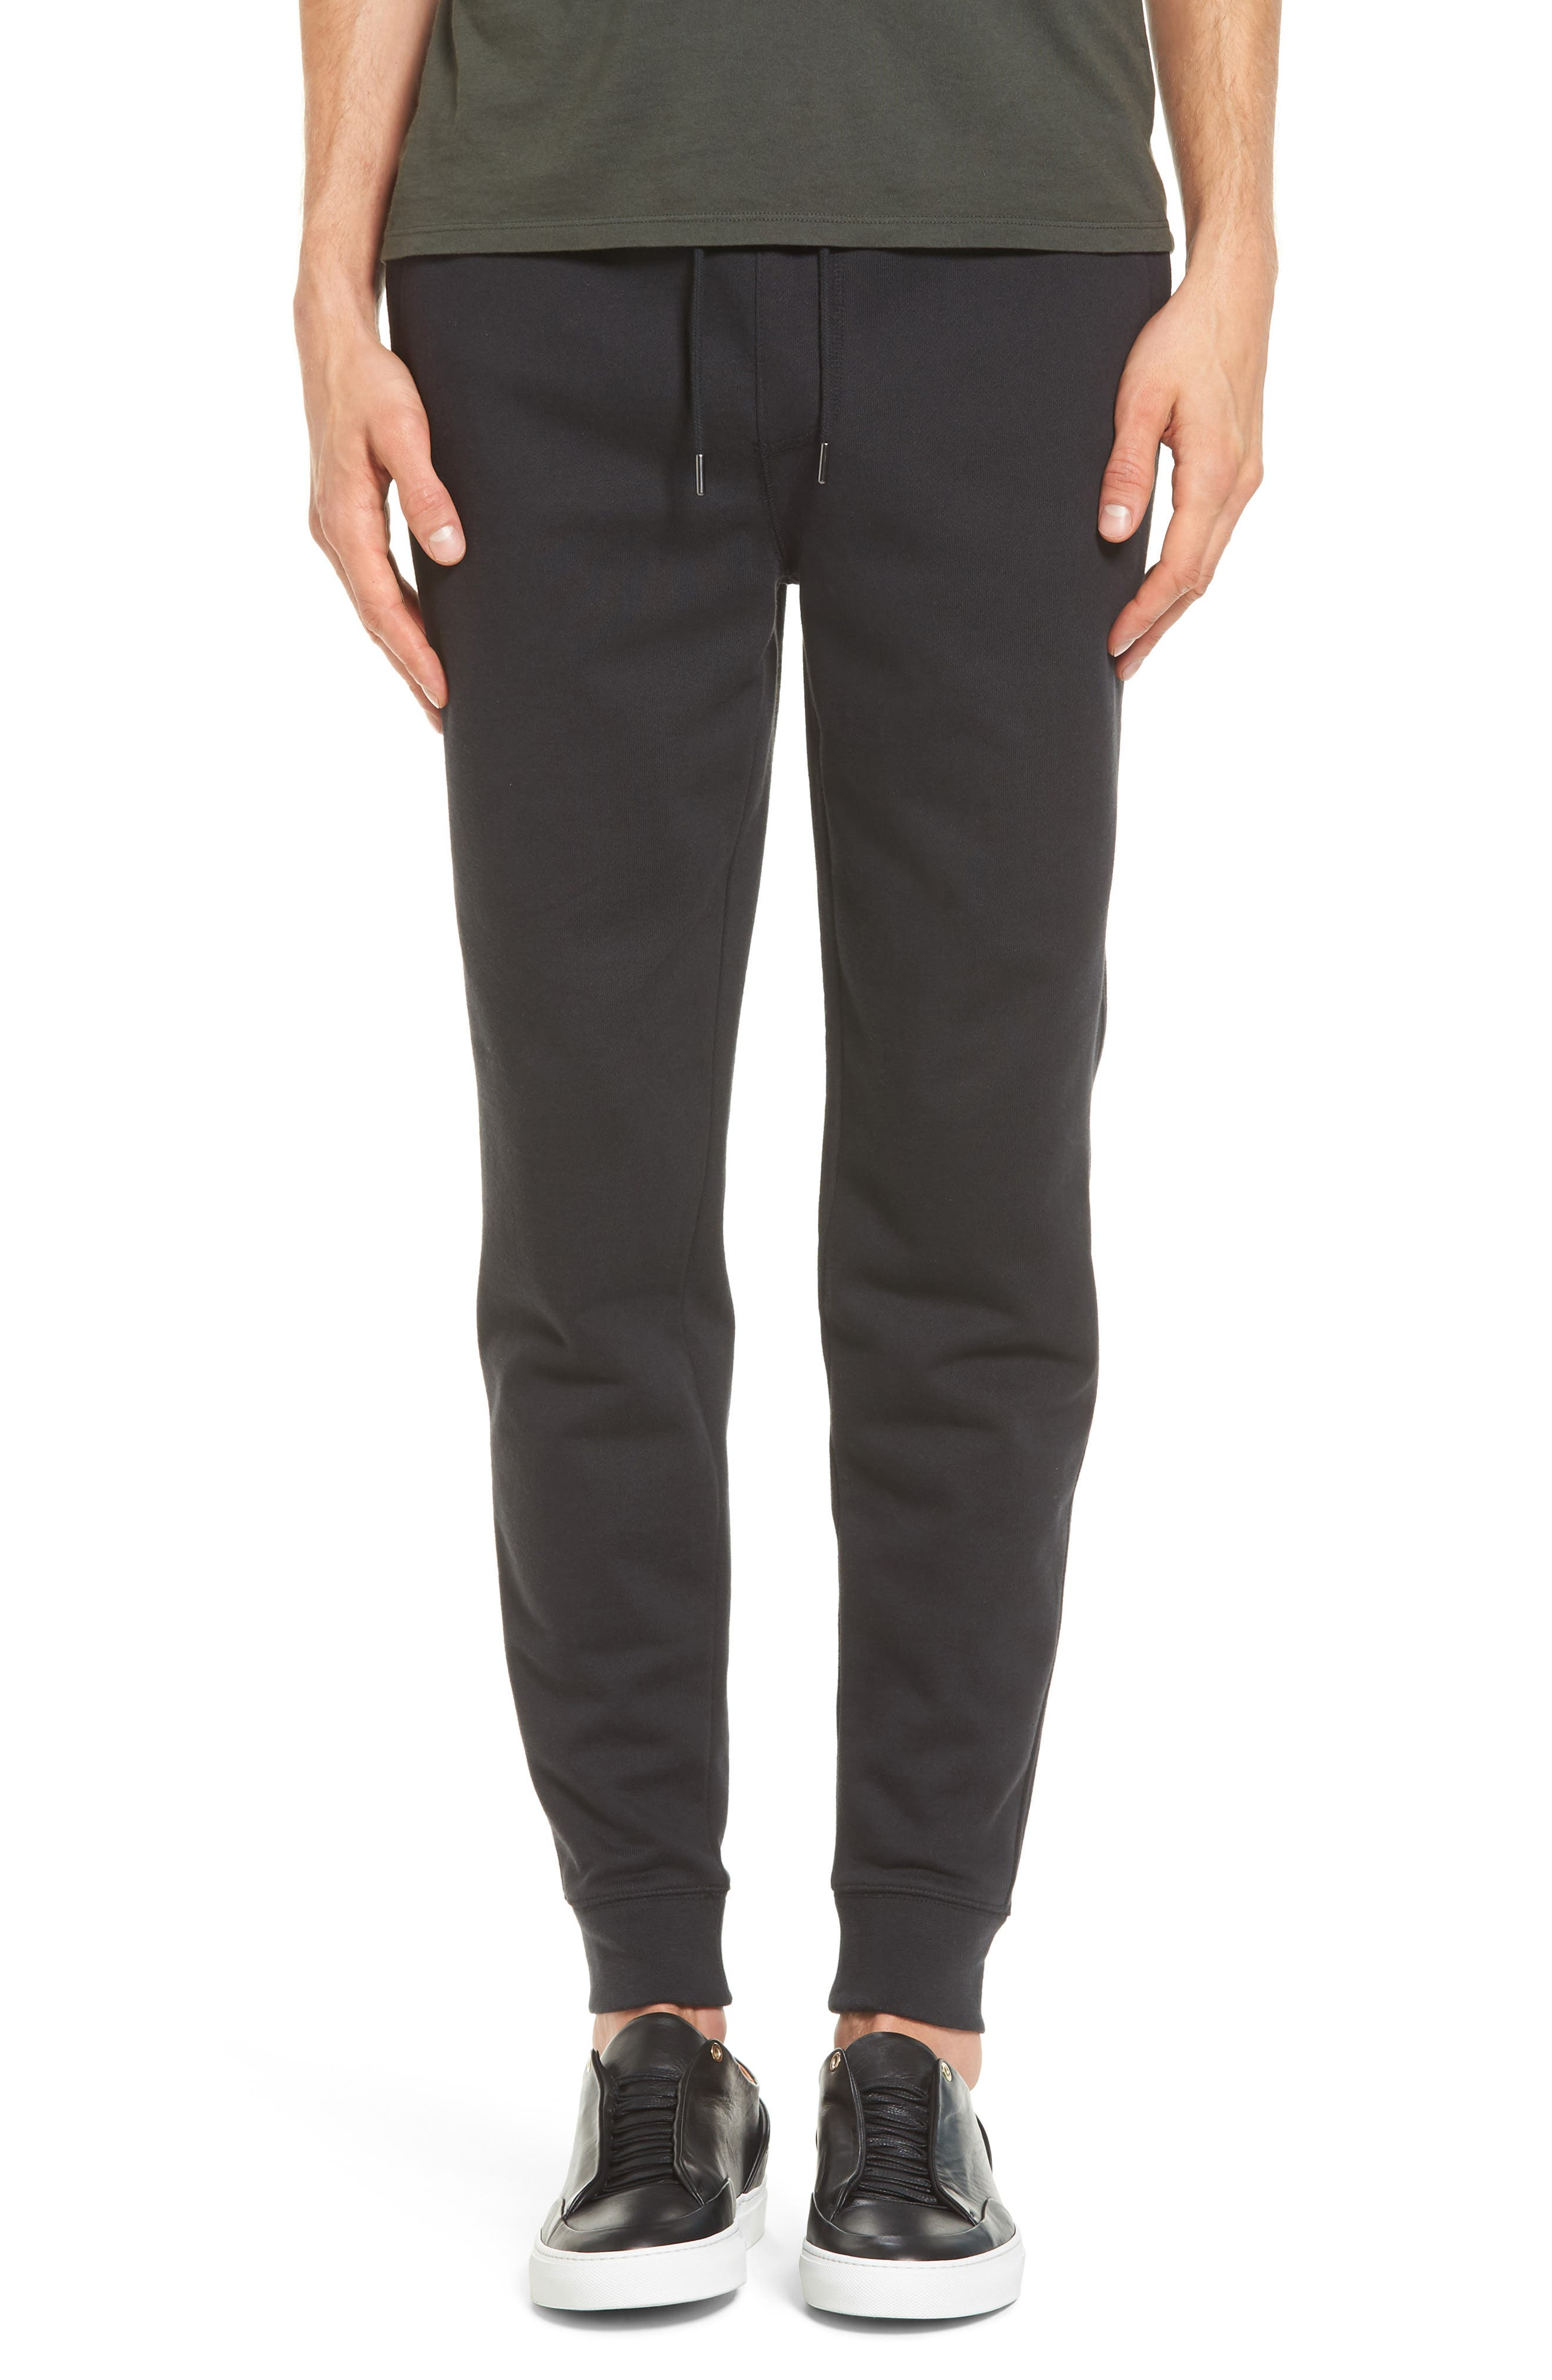 Alternate Image 1 Selected - Everlane The Classic French Terry Sweatpants